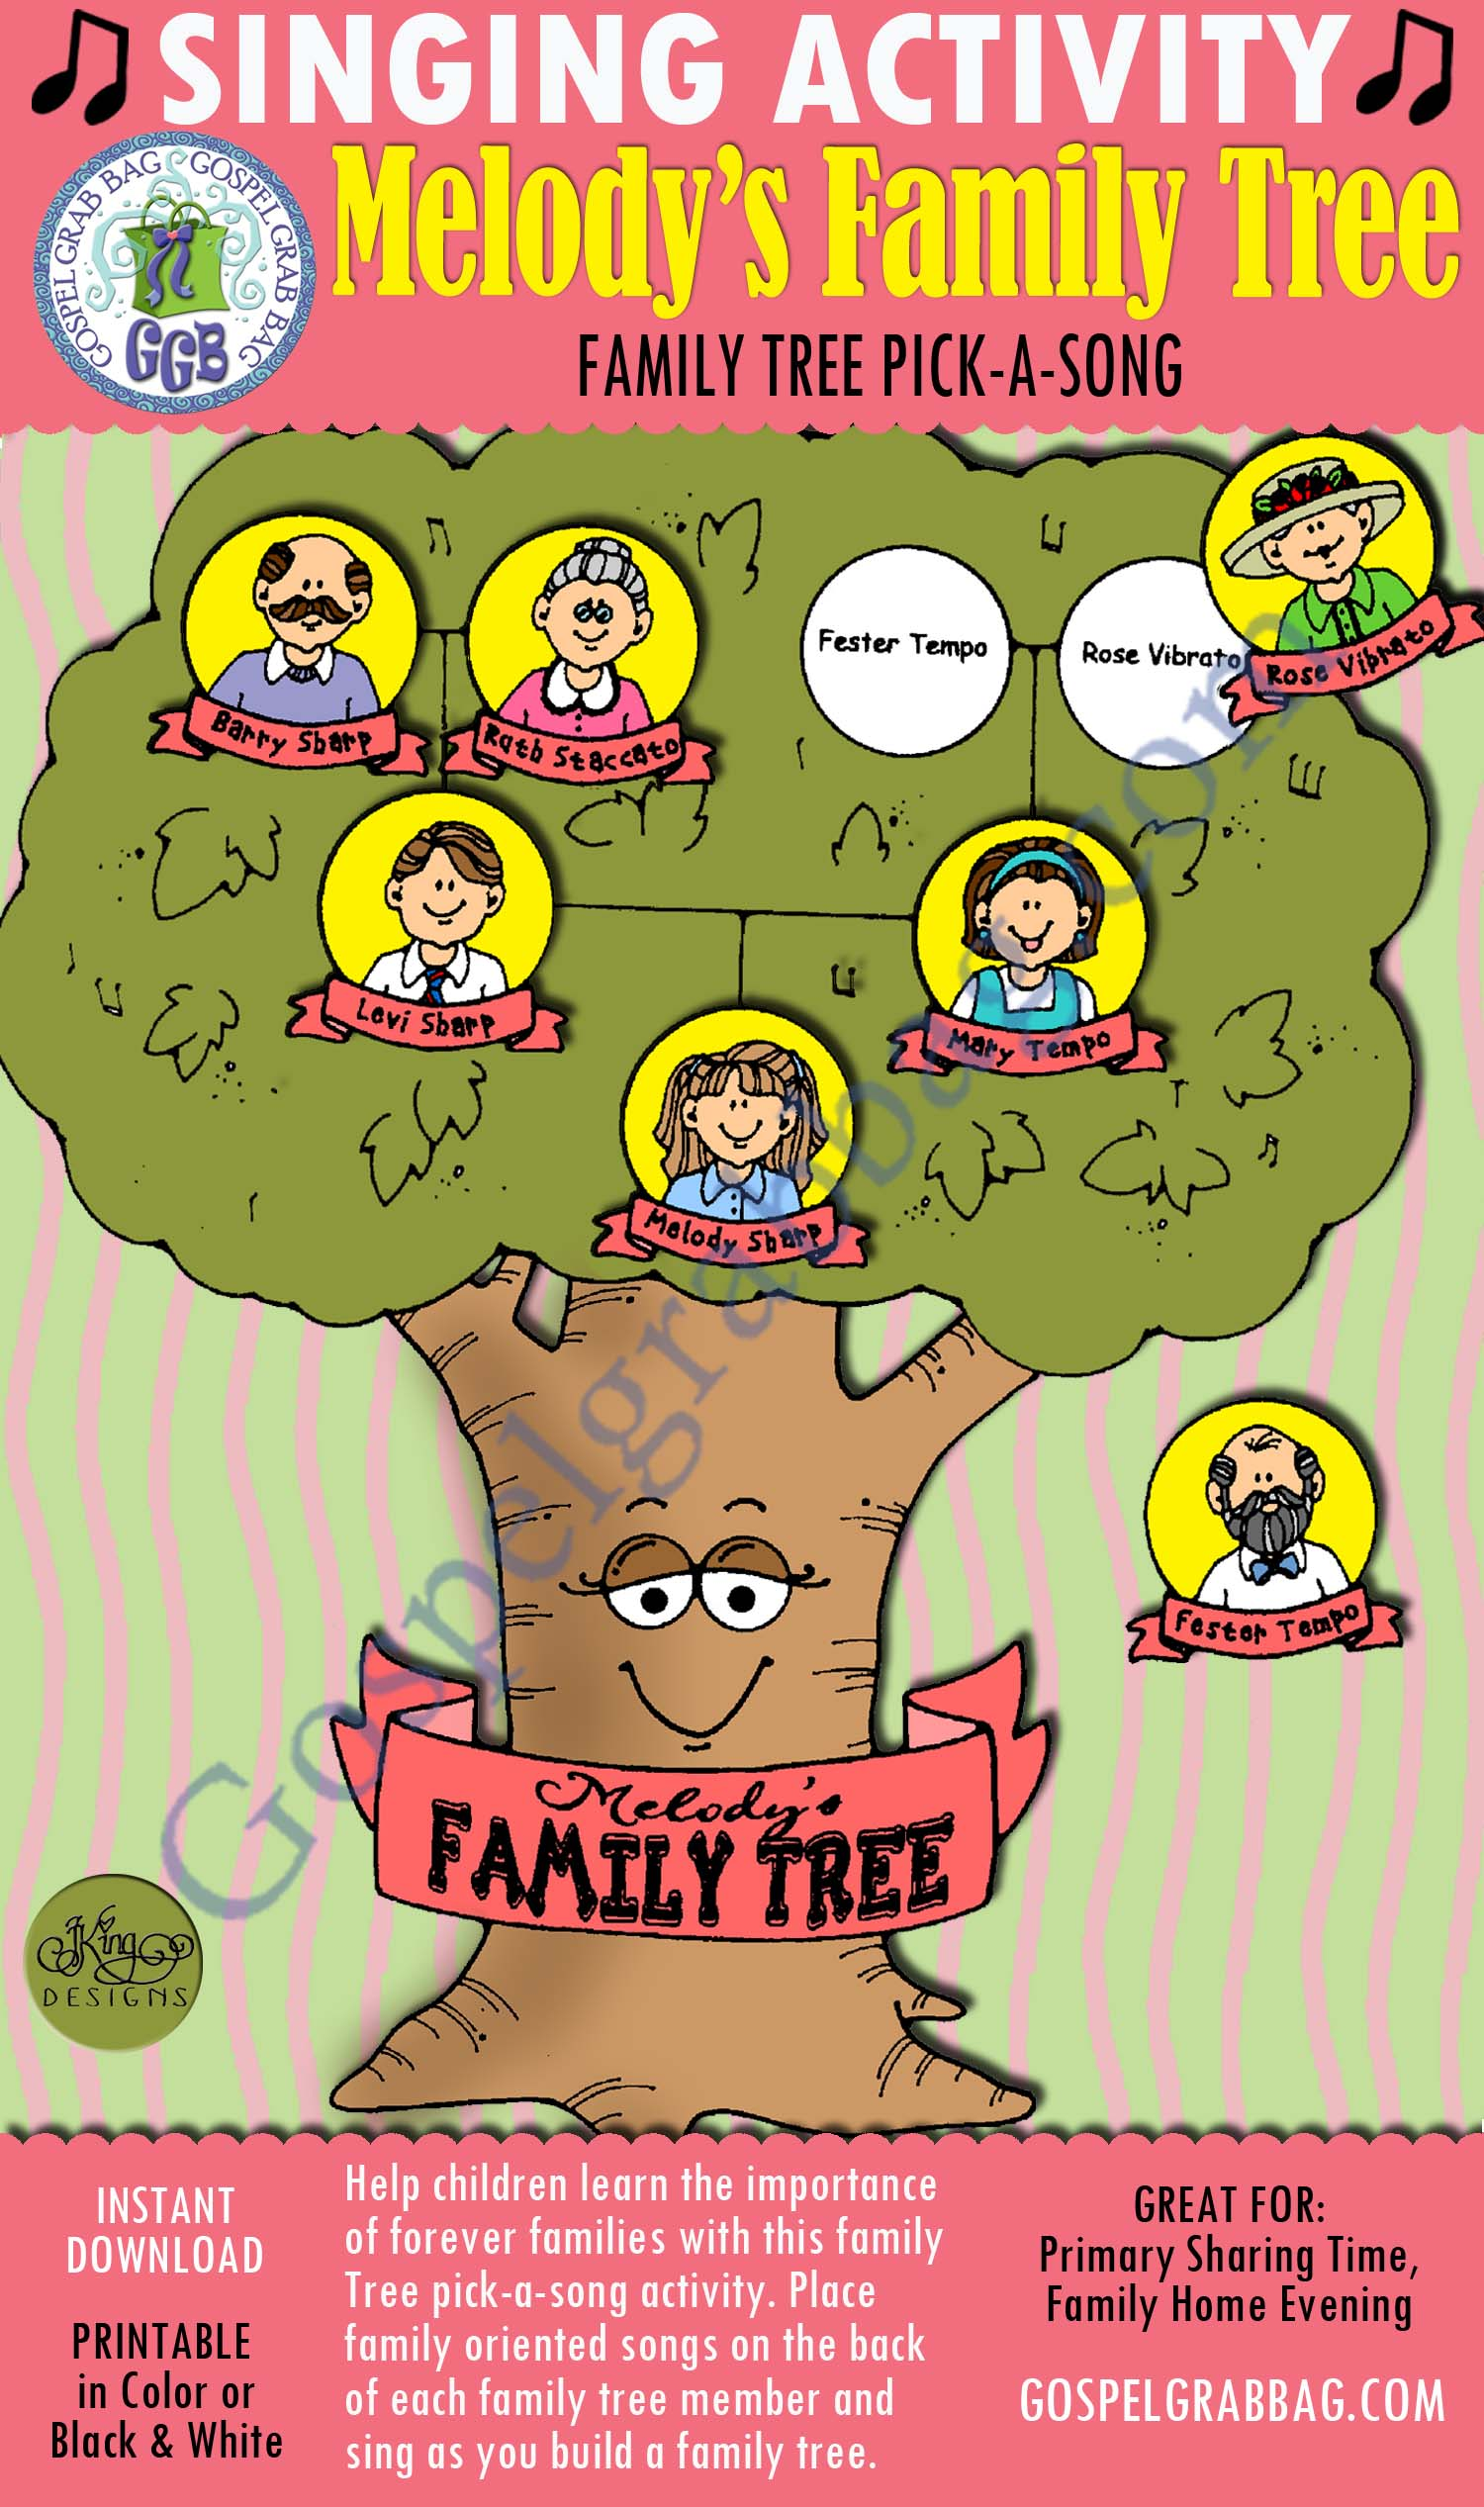 $3.00 MELODY'S FAMILY TREE pick-a-song: Primary Music Singing Time Activities to Motivate Children to Sing, download from GospelGrabBag.com